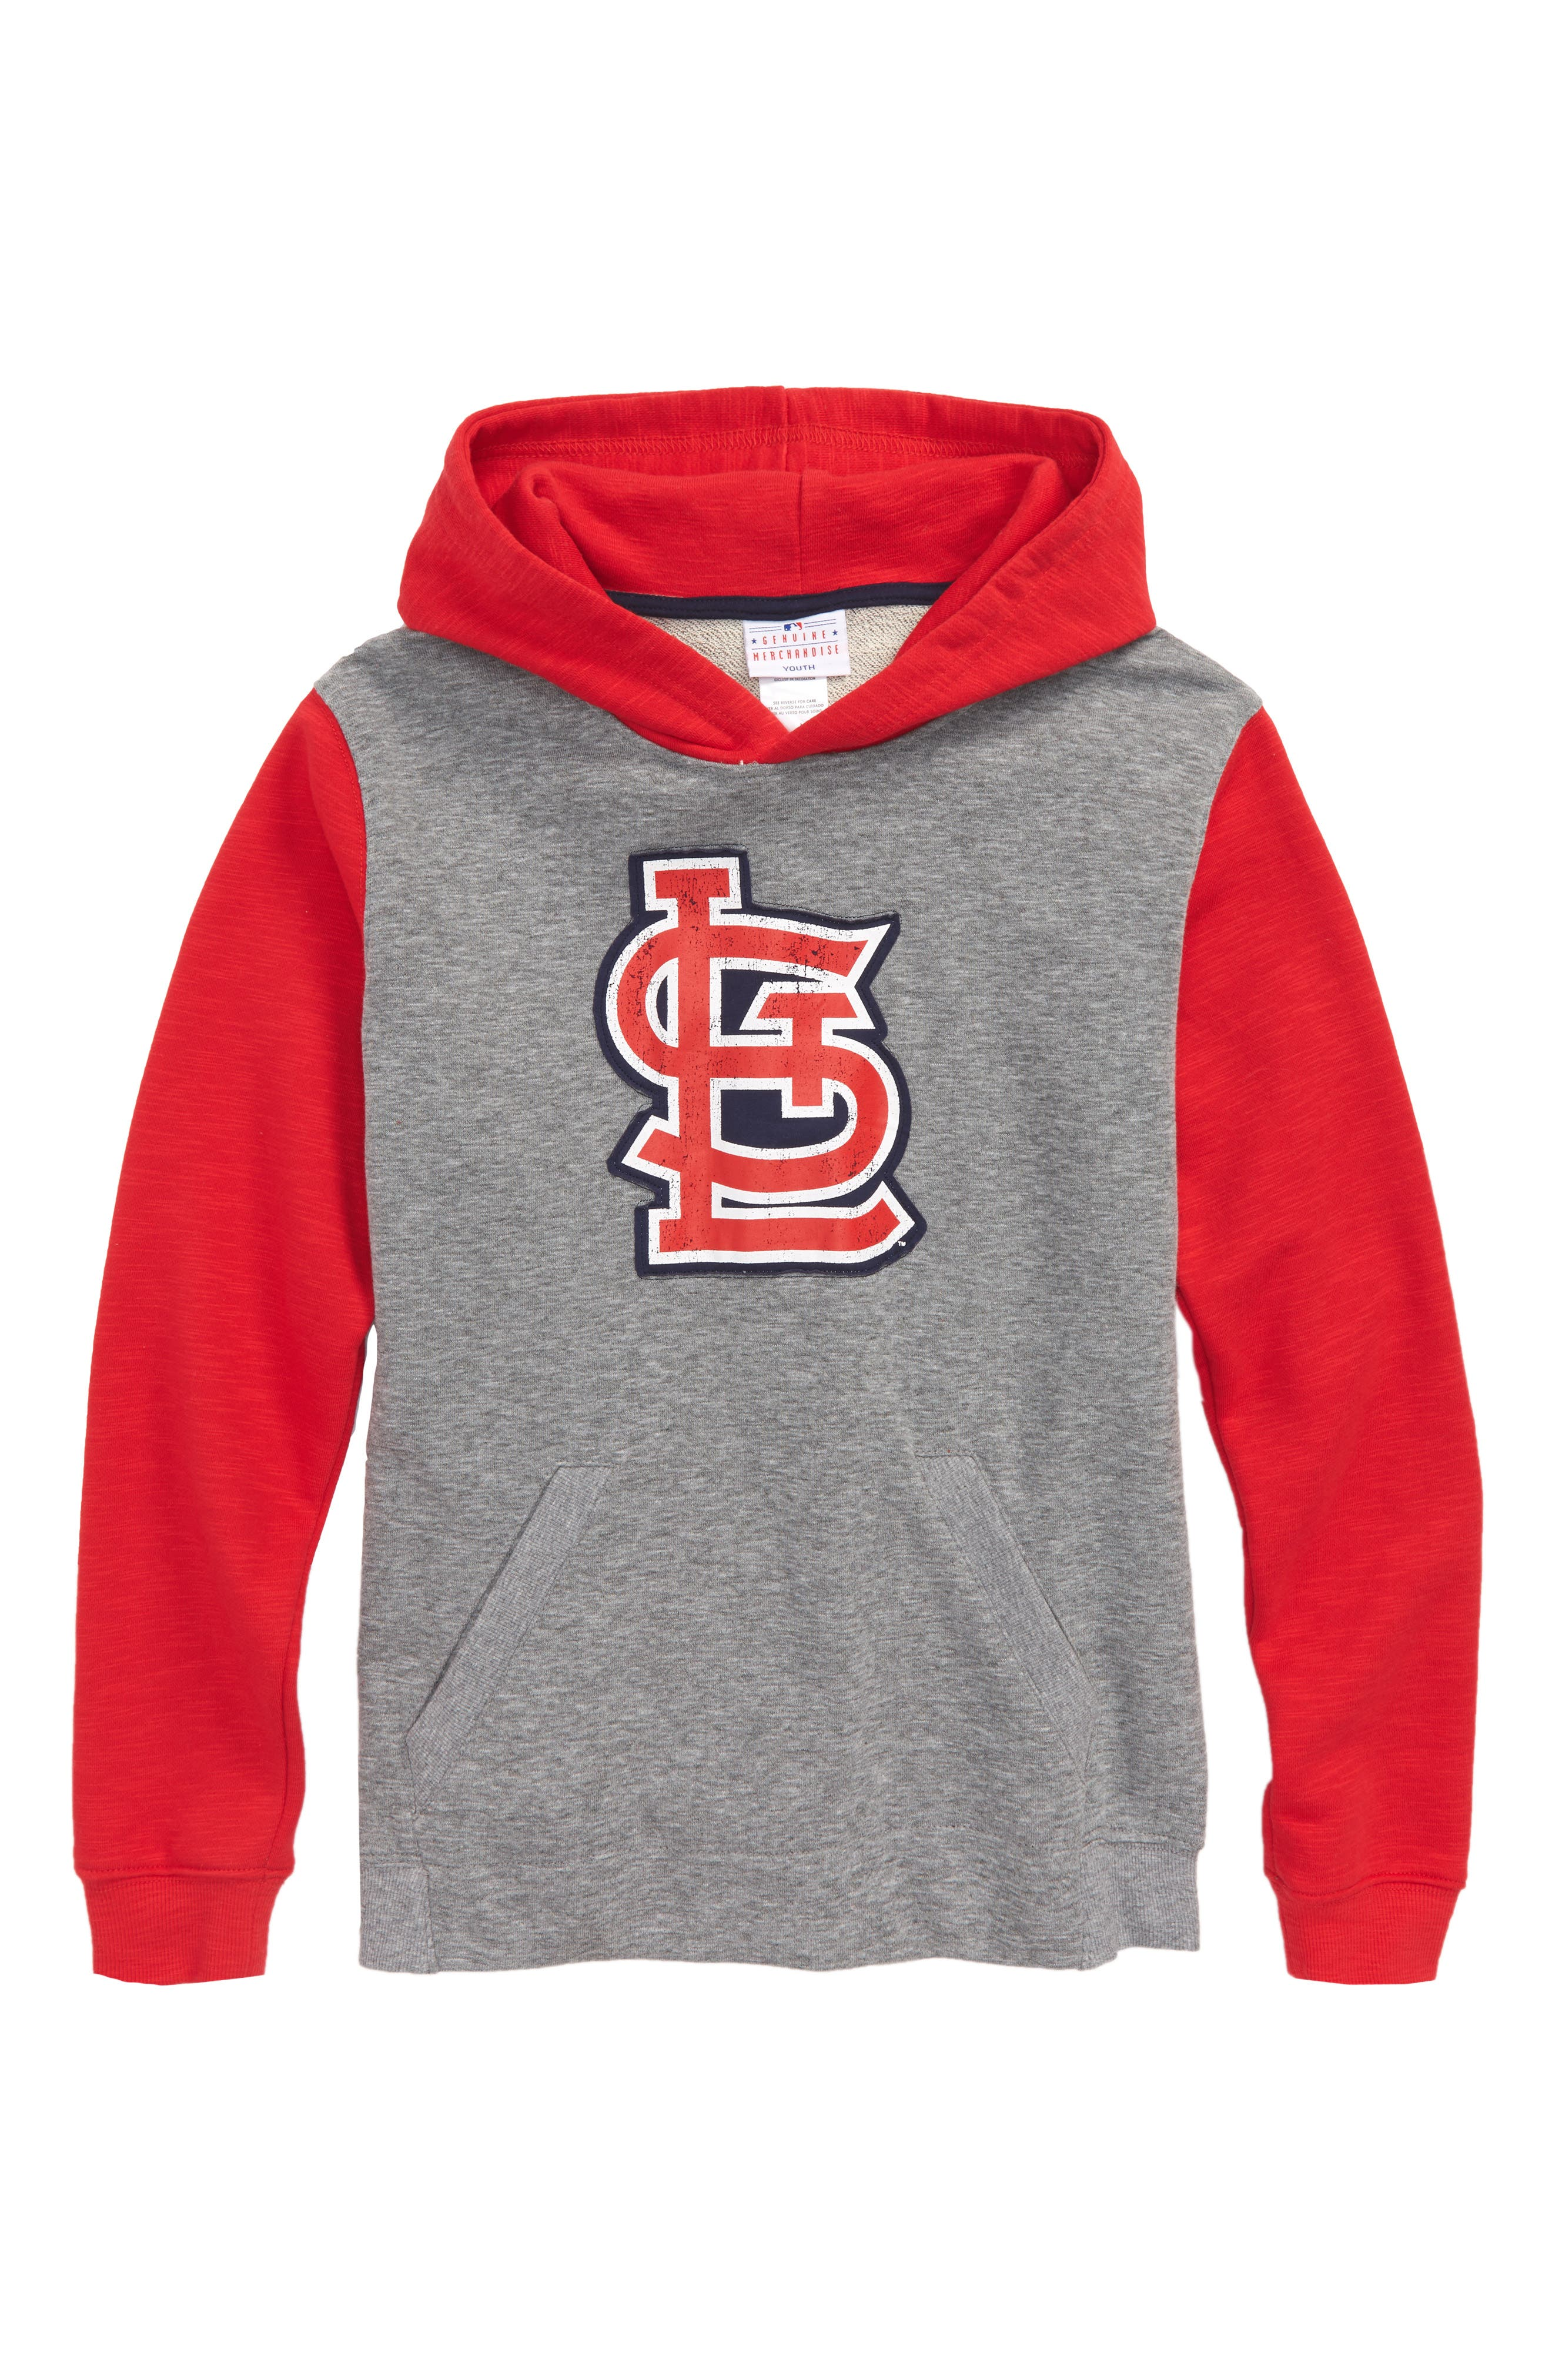 New Beginnings - St. Louis Cardinals Pullover Hoodie,                         Main,                         color, Gray